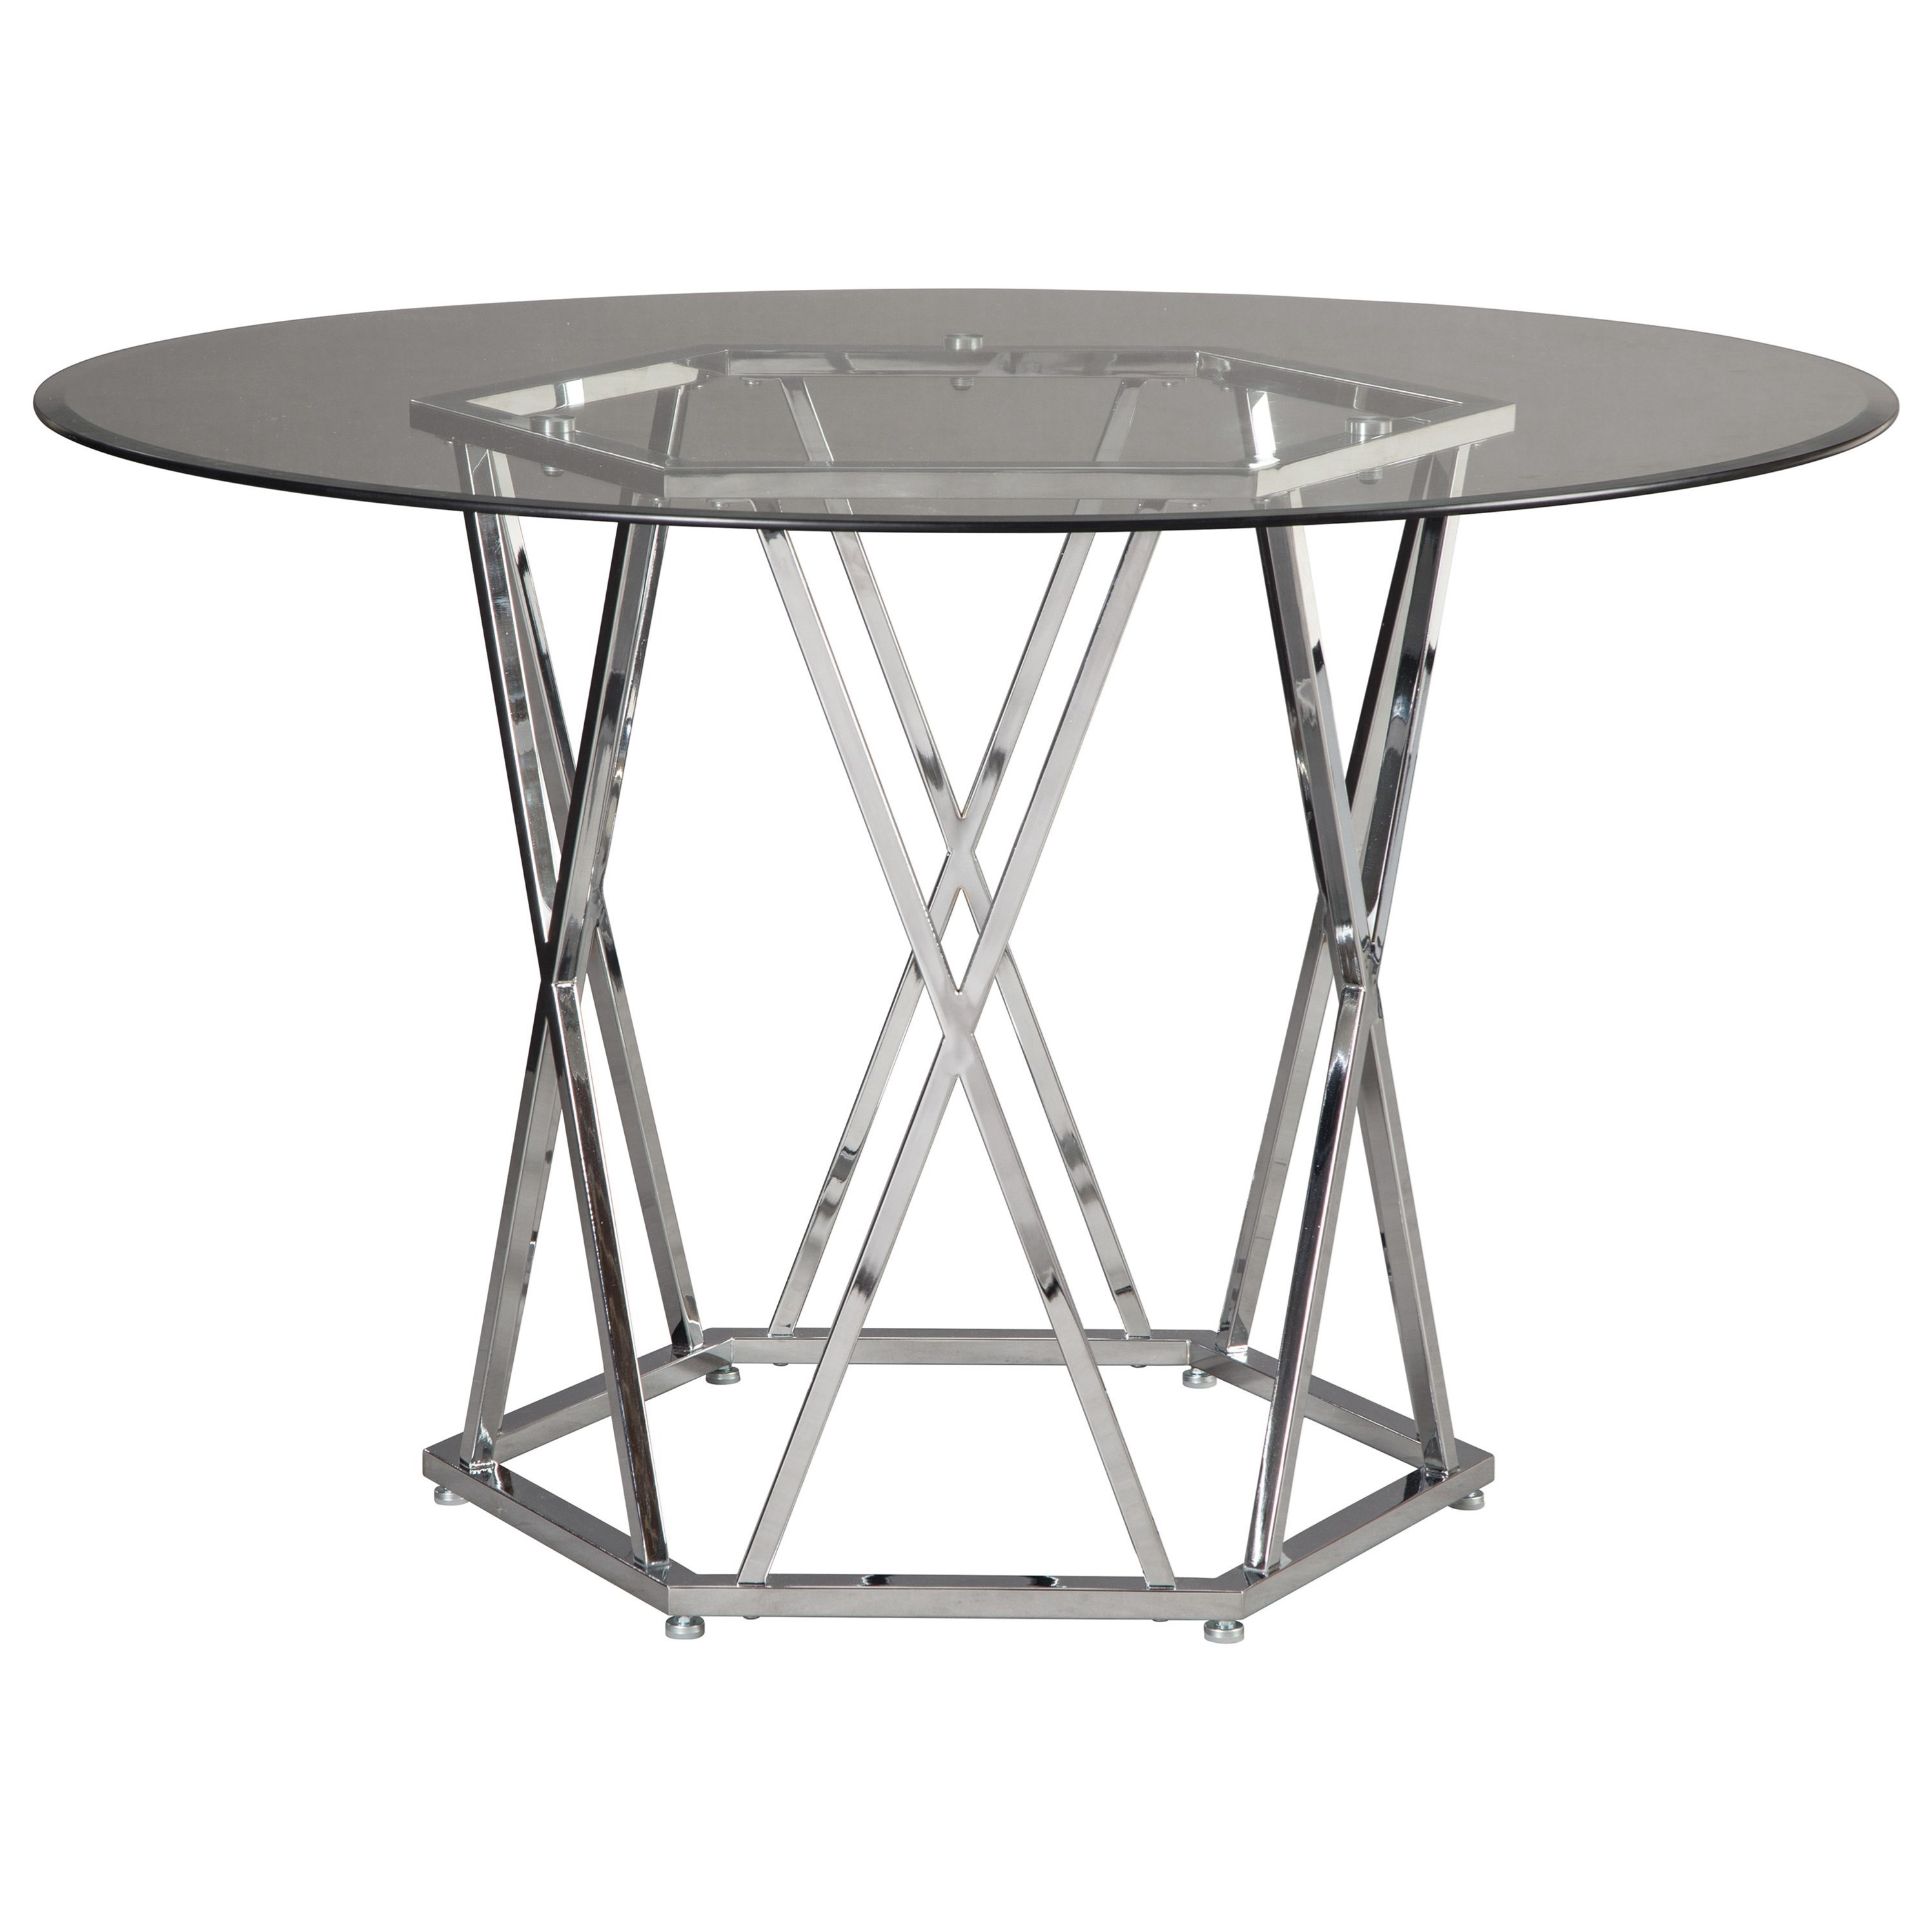 Merveilleux Signature Design By Ashley Madanere Round Dining Room Table ...